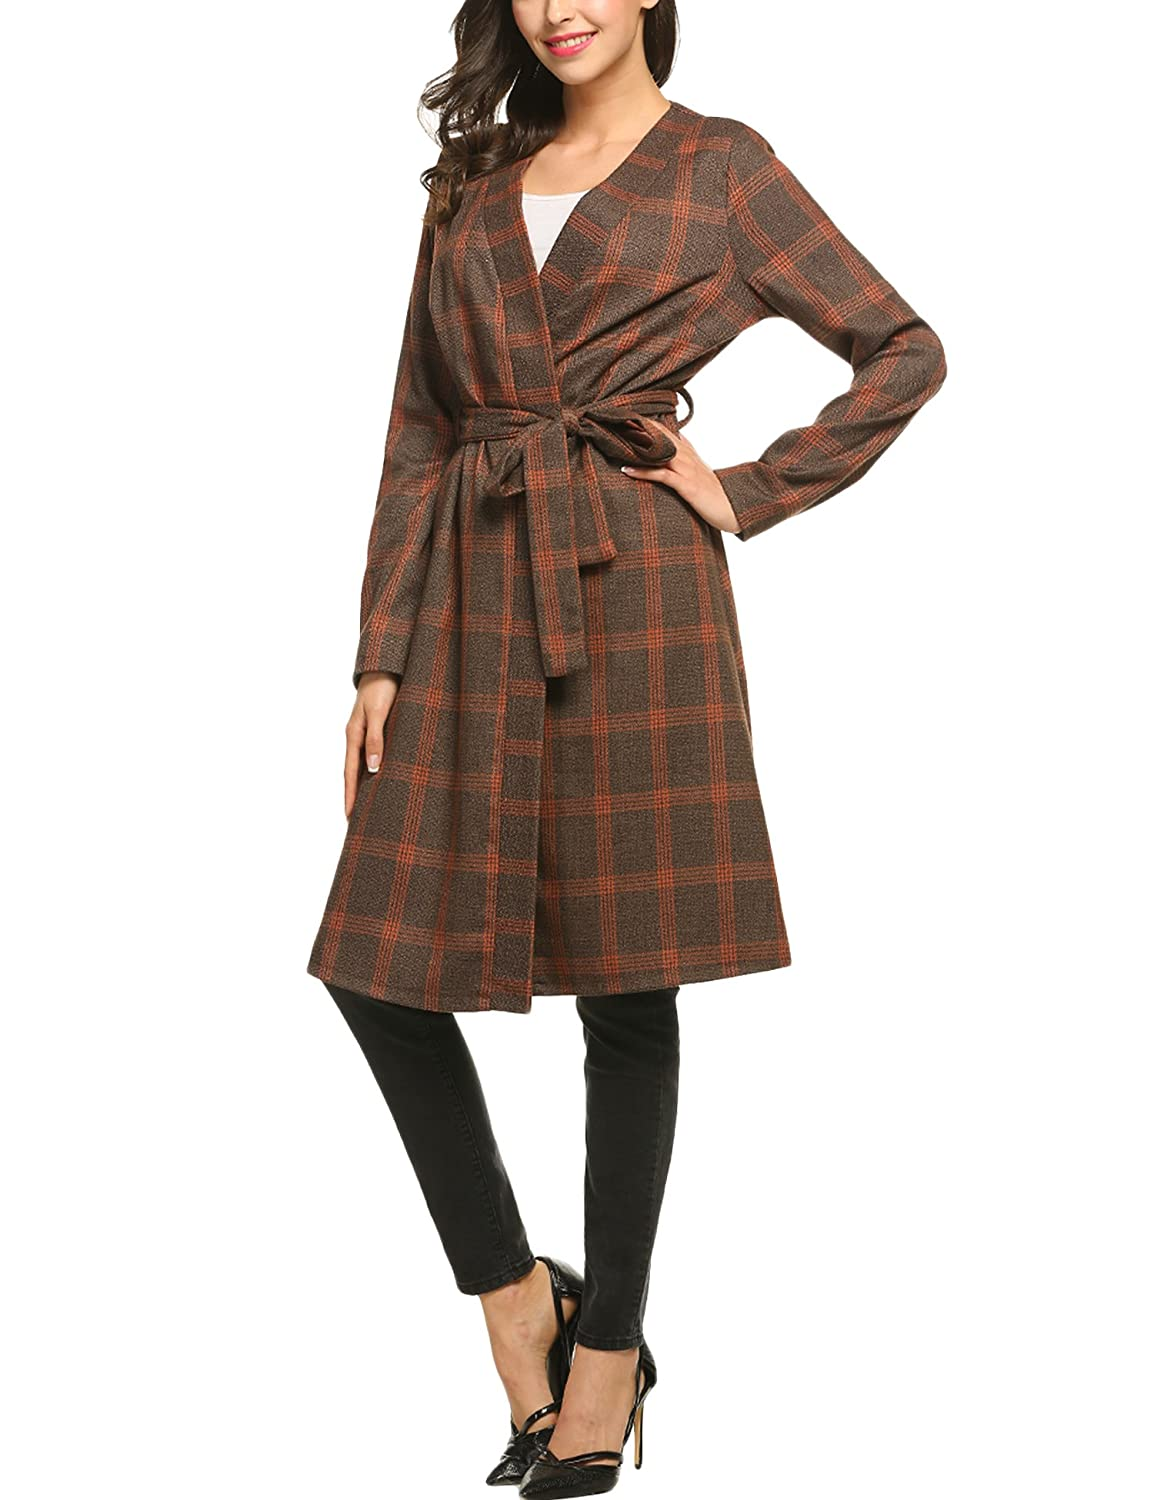 Zeagoo Women Fashion Collarless Long Sleeve Plaid Belted Long Coat Outwear ZTH007882_O_XL